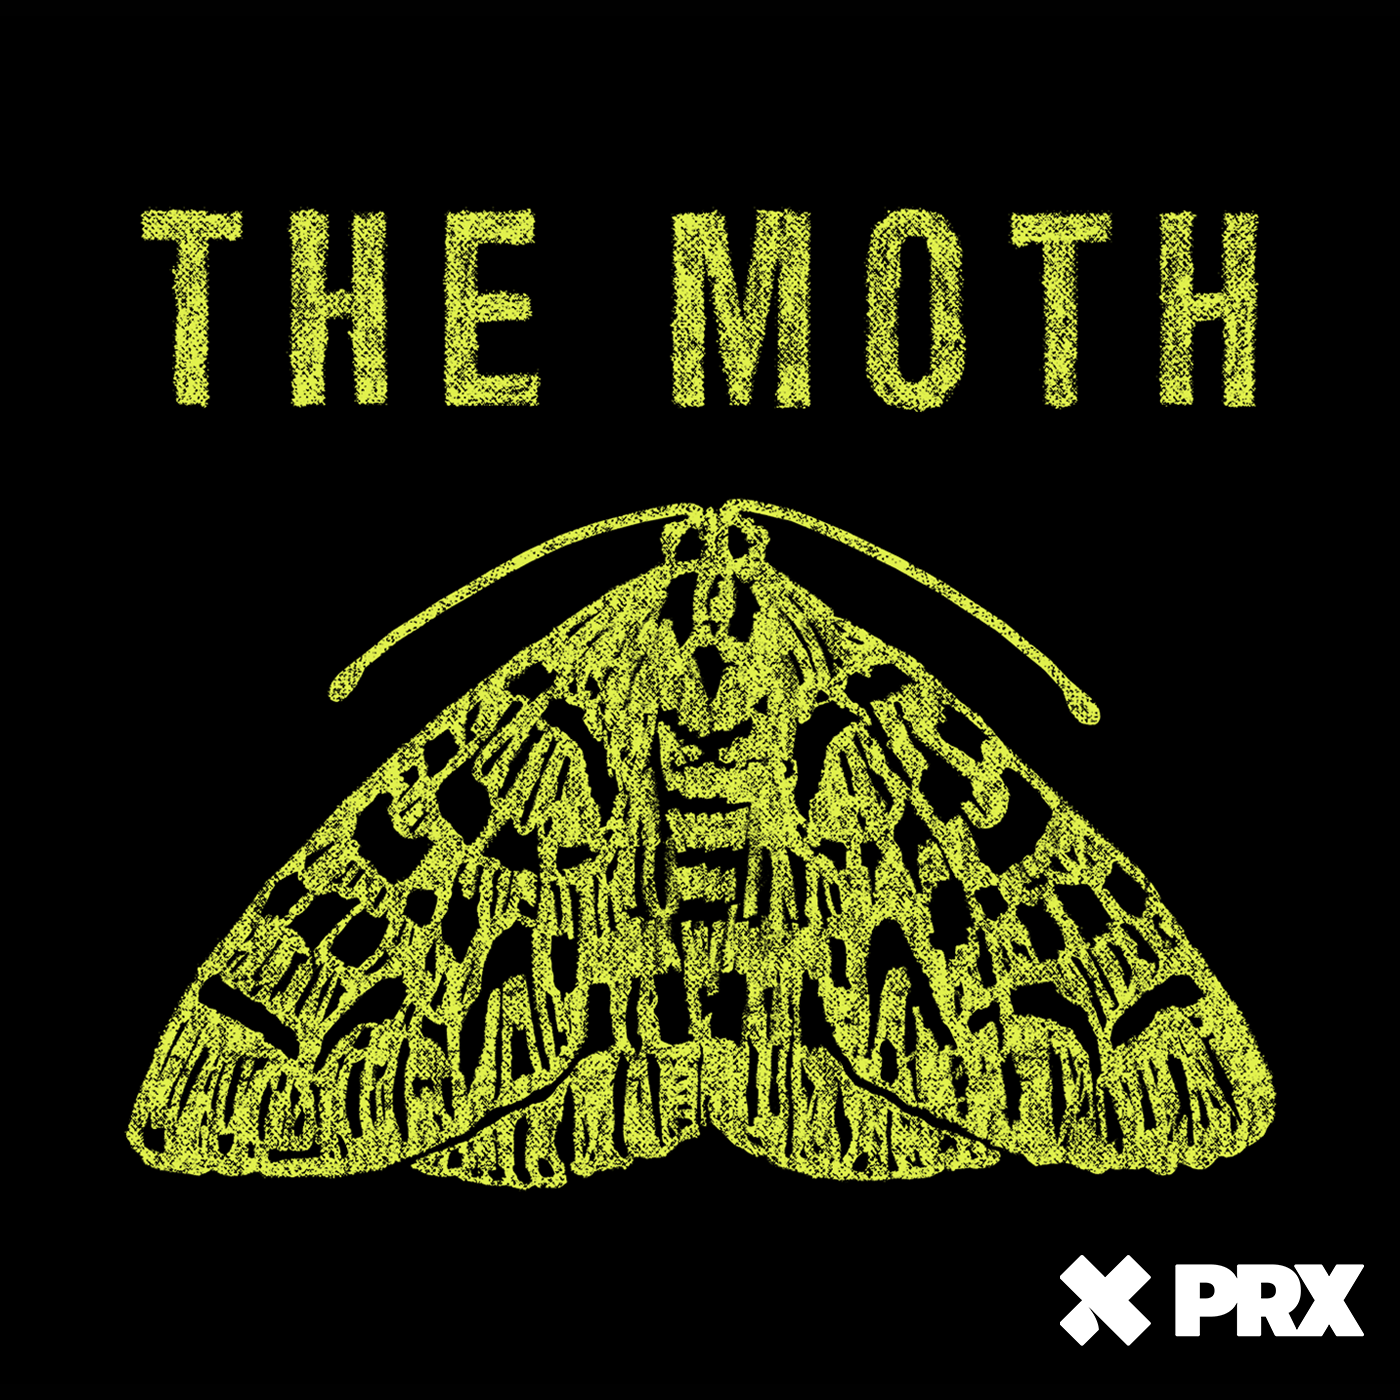 The Moth Radio Hour: Ski, Poe, Spa, and Towers